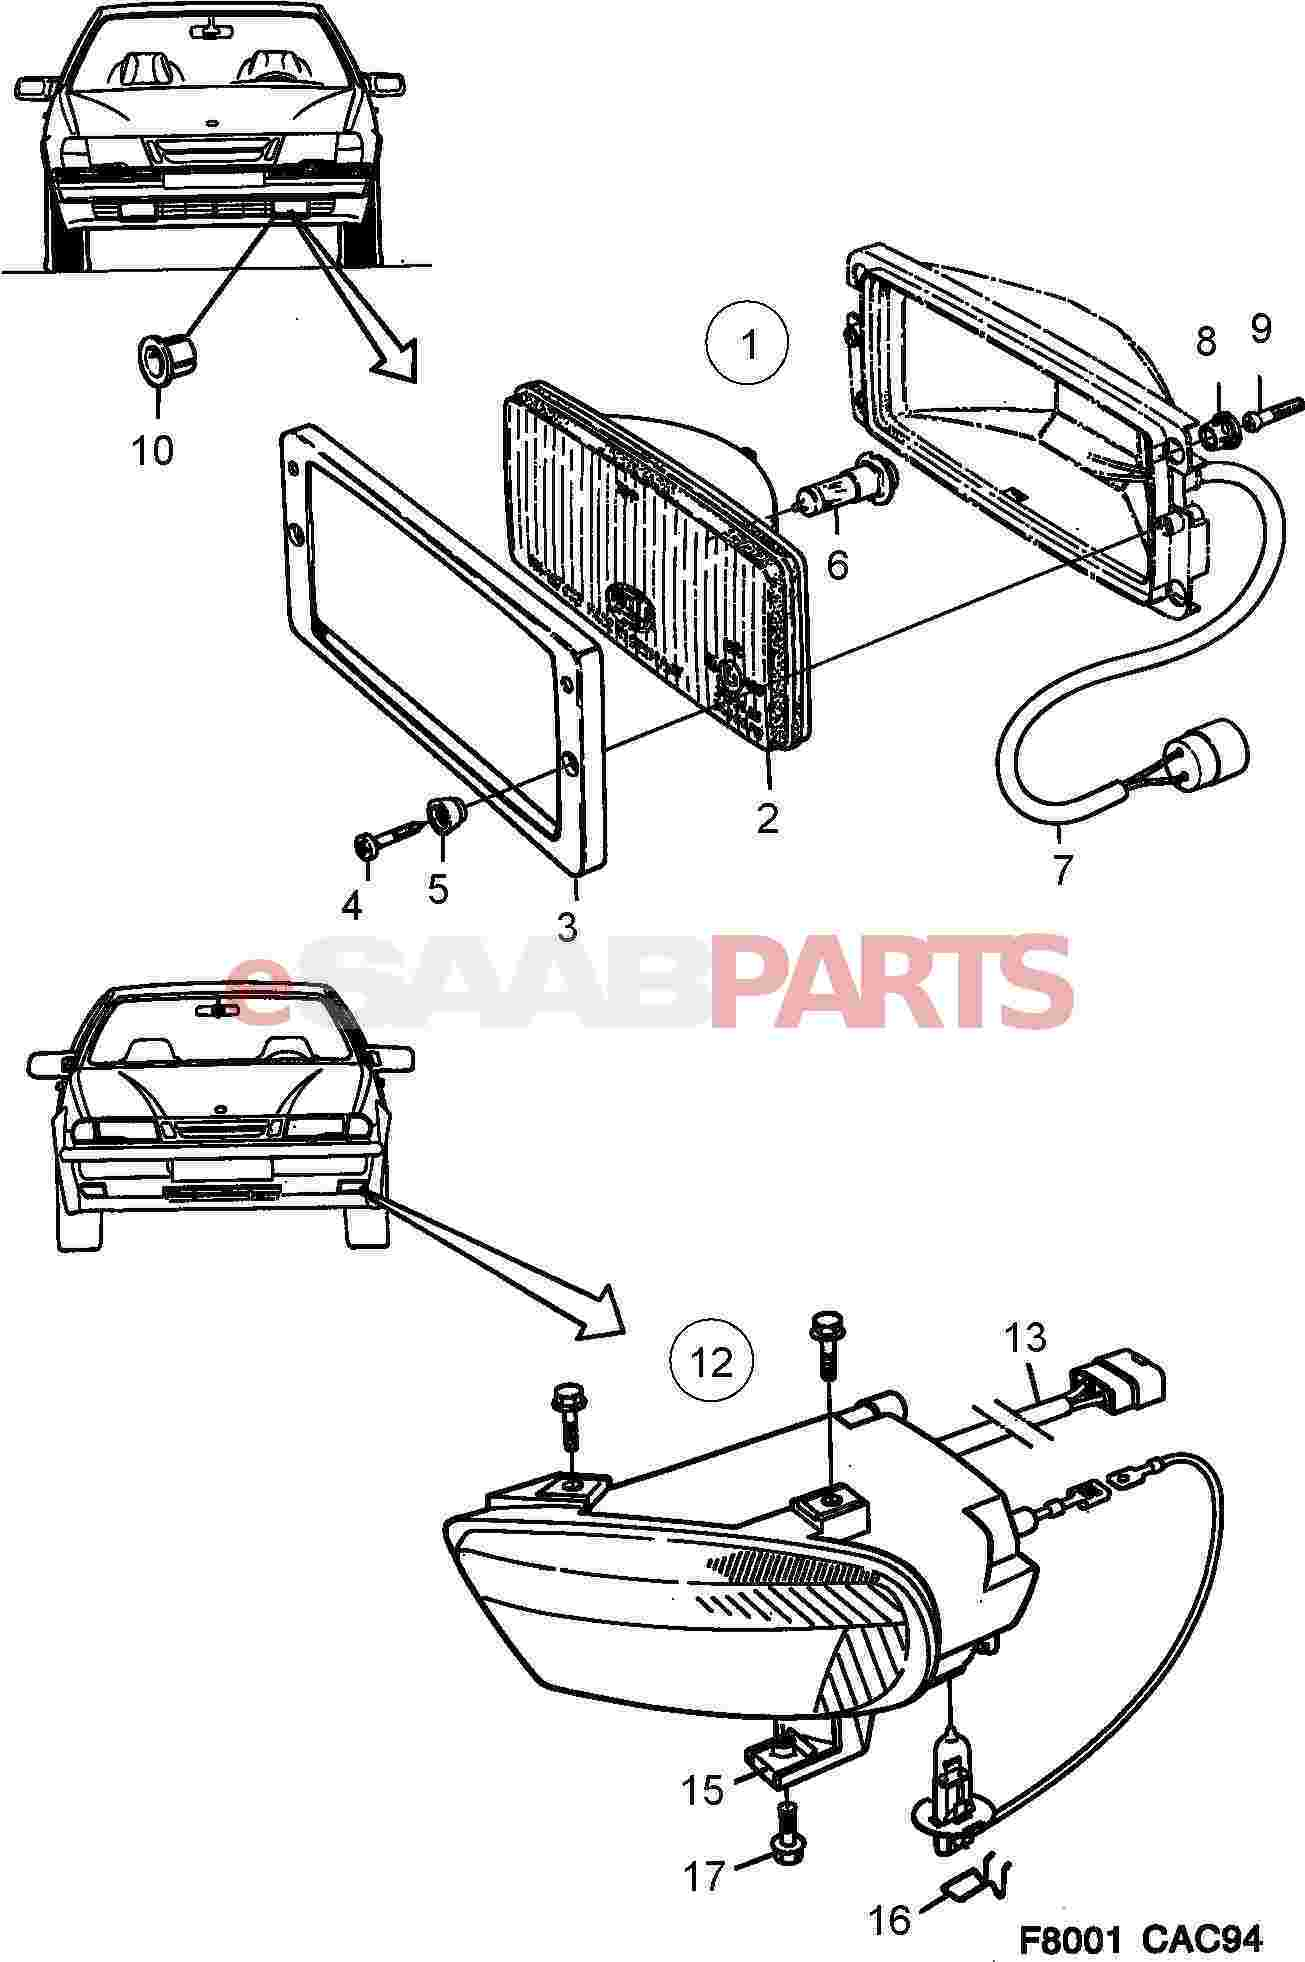 saab 9 3 linear engine diagram saab 9 3 2 0t engine wiring saab engine cooling diagram